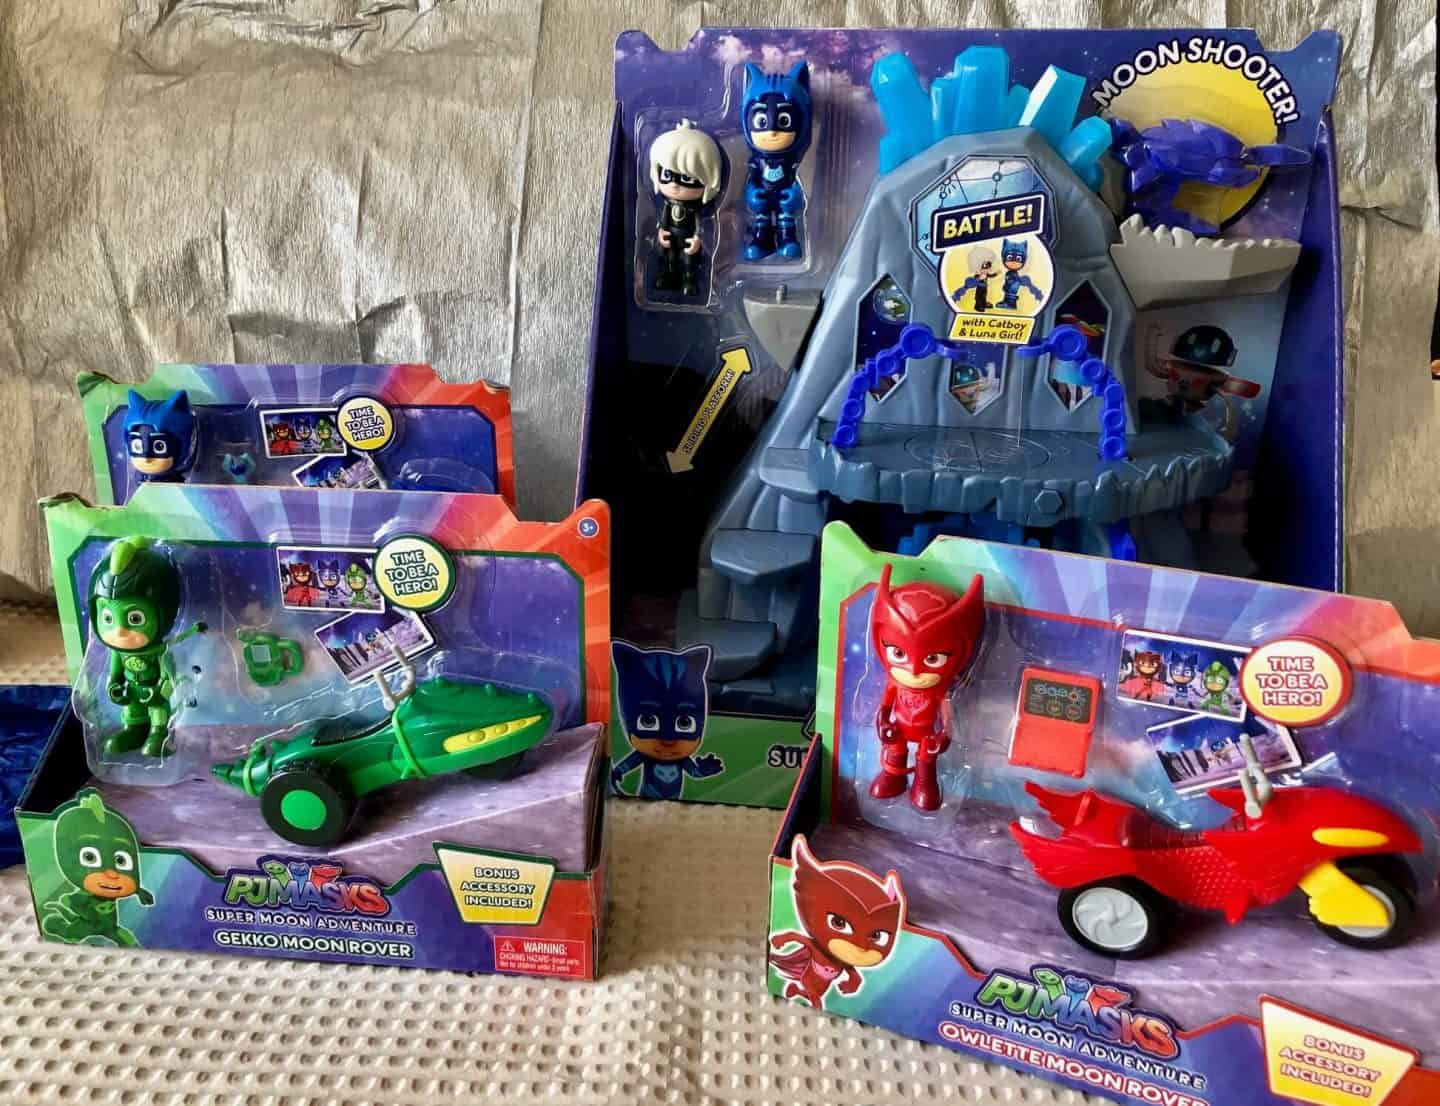 Crafting with PJ Masks: Super Moon Adventures Fortress With Moon Rovers